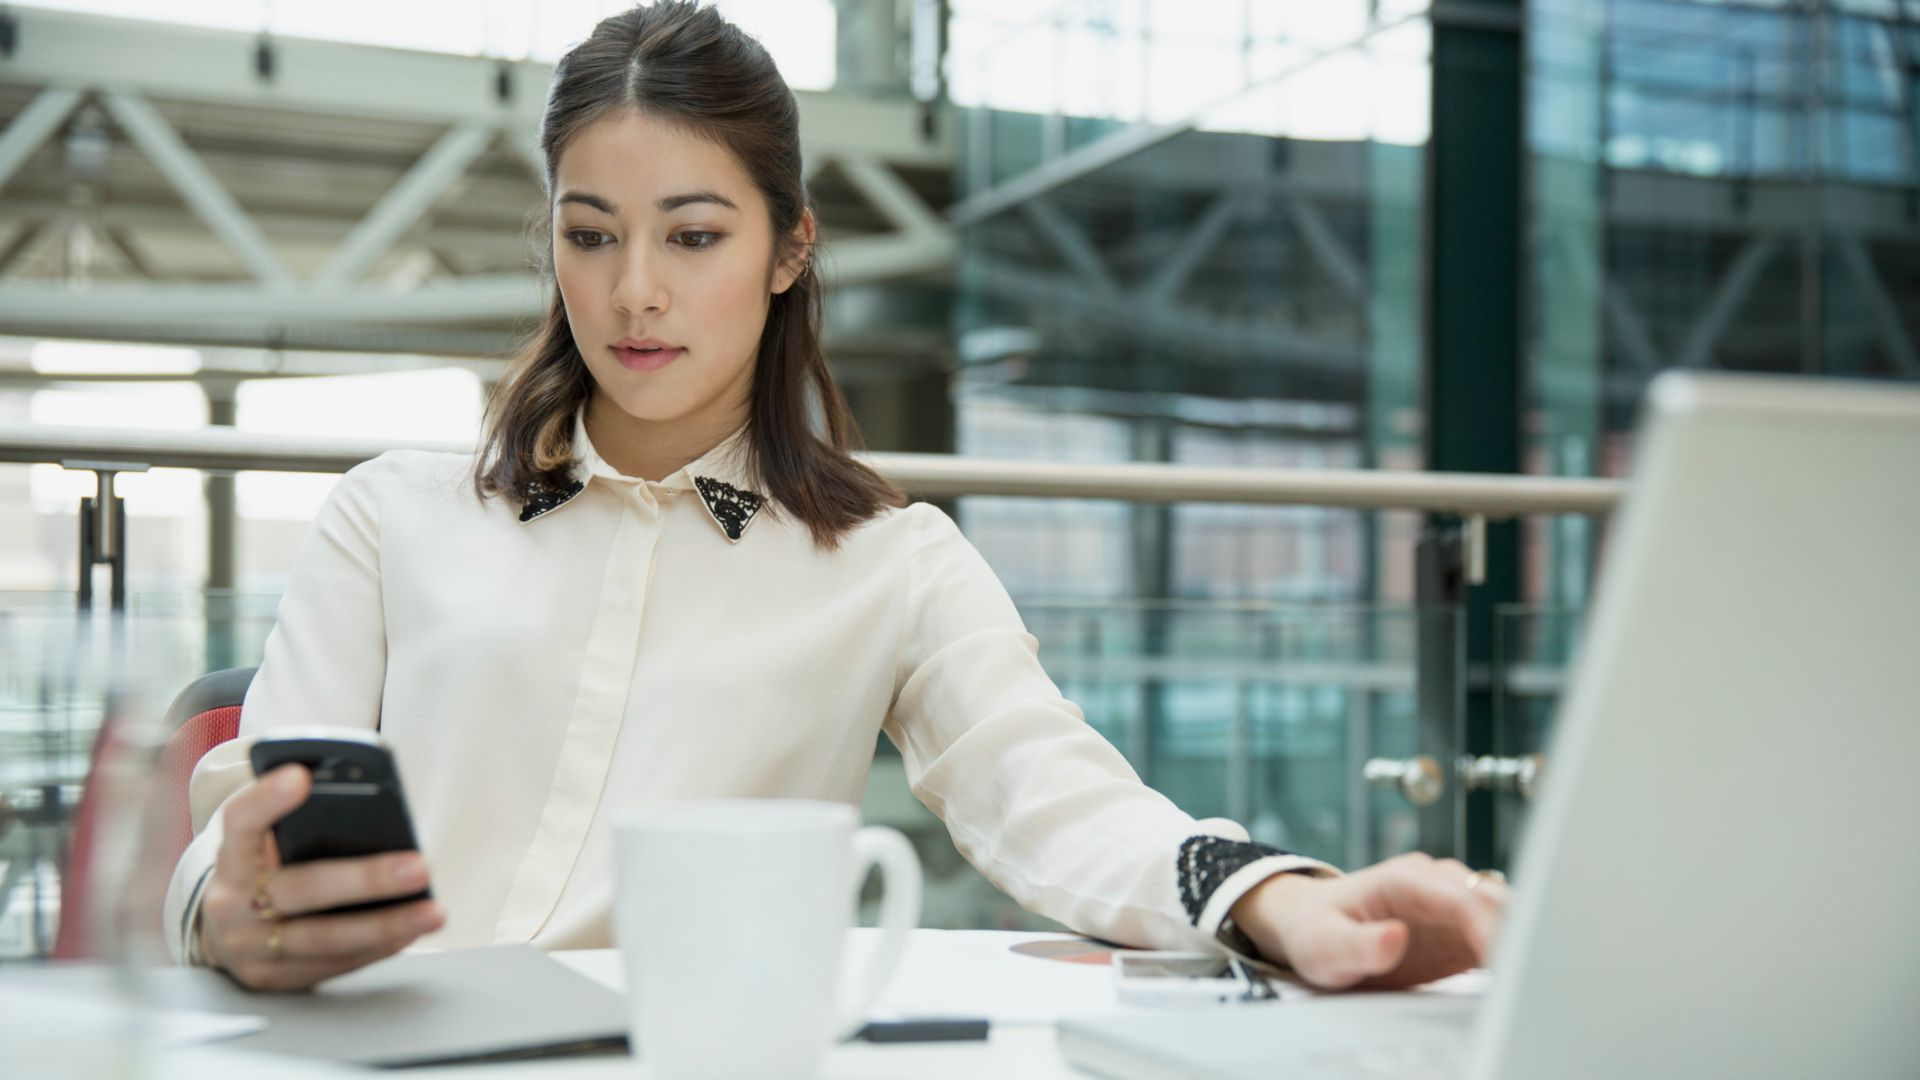 A Hint of Life shares tips on how to deal with unfriendly competition at work